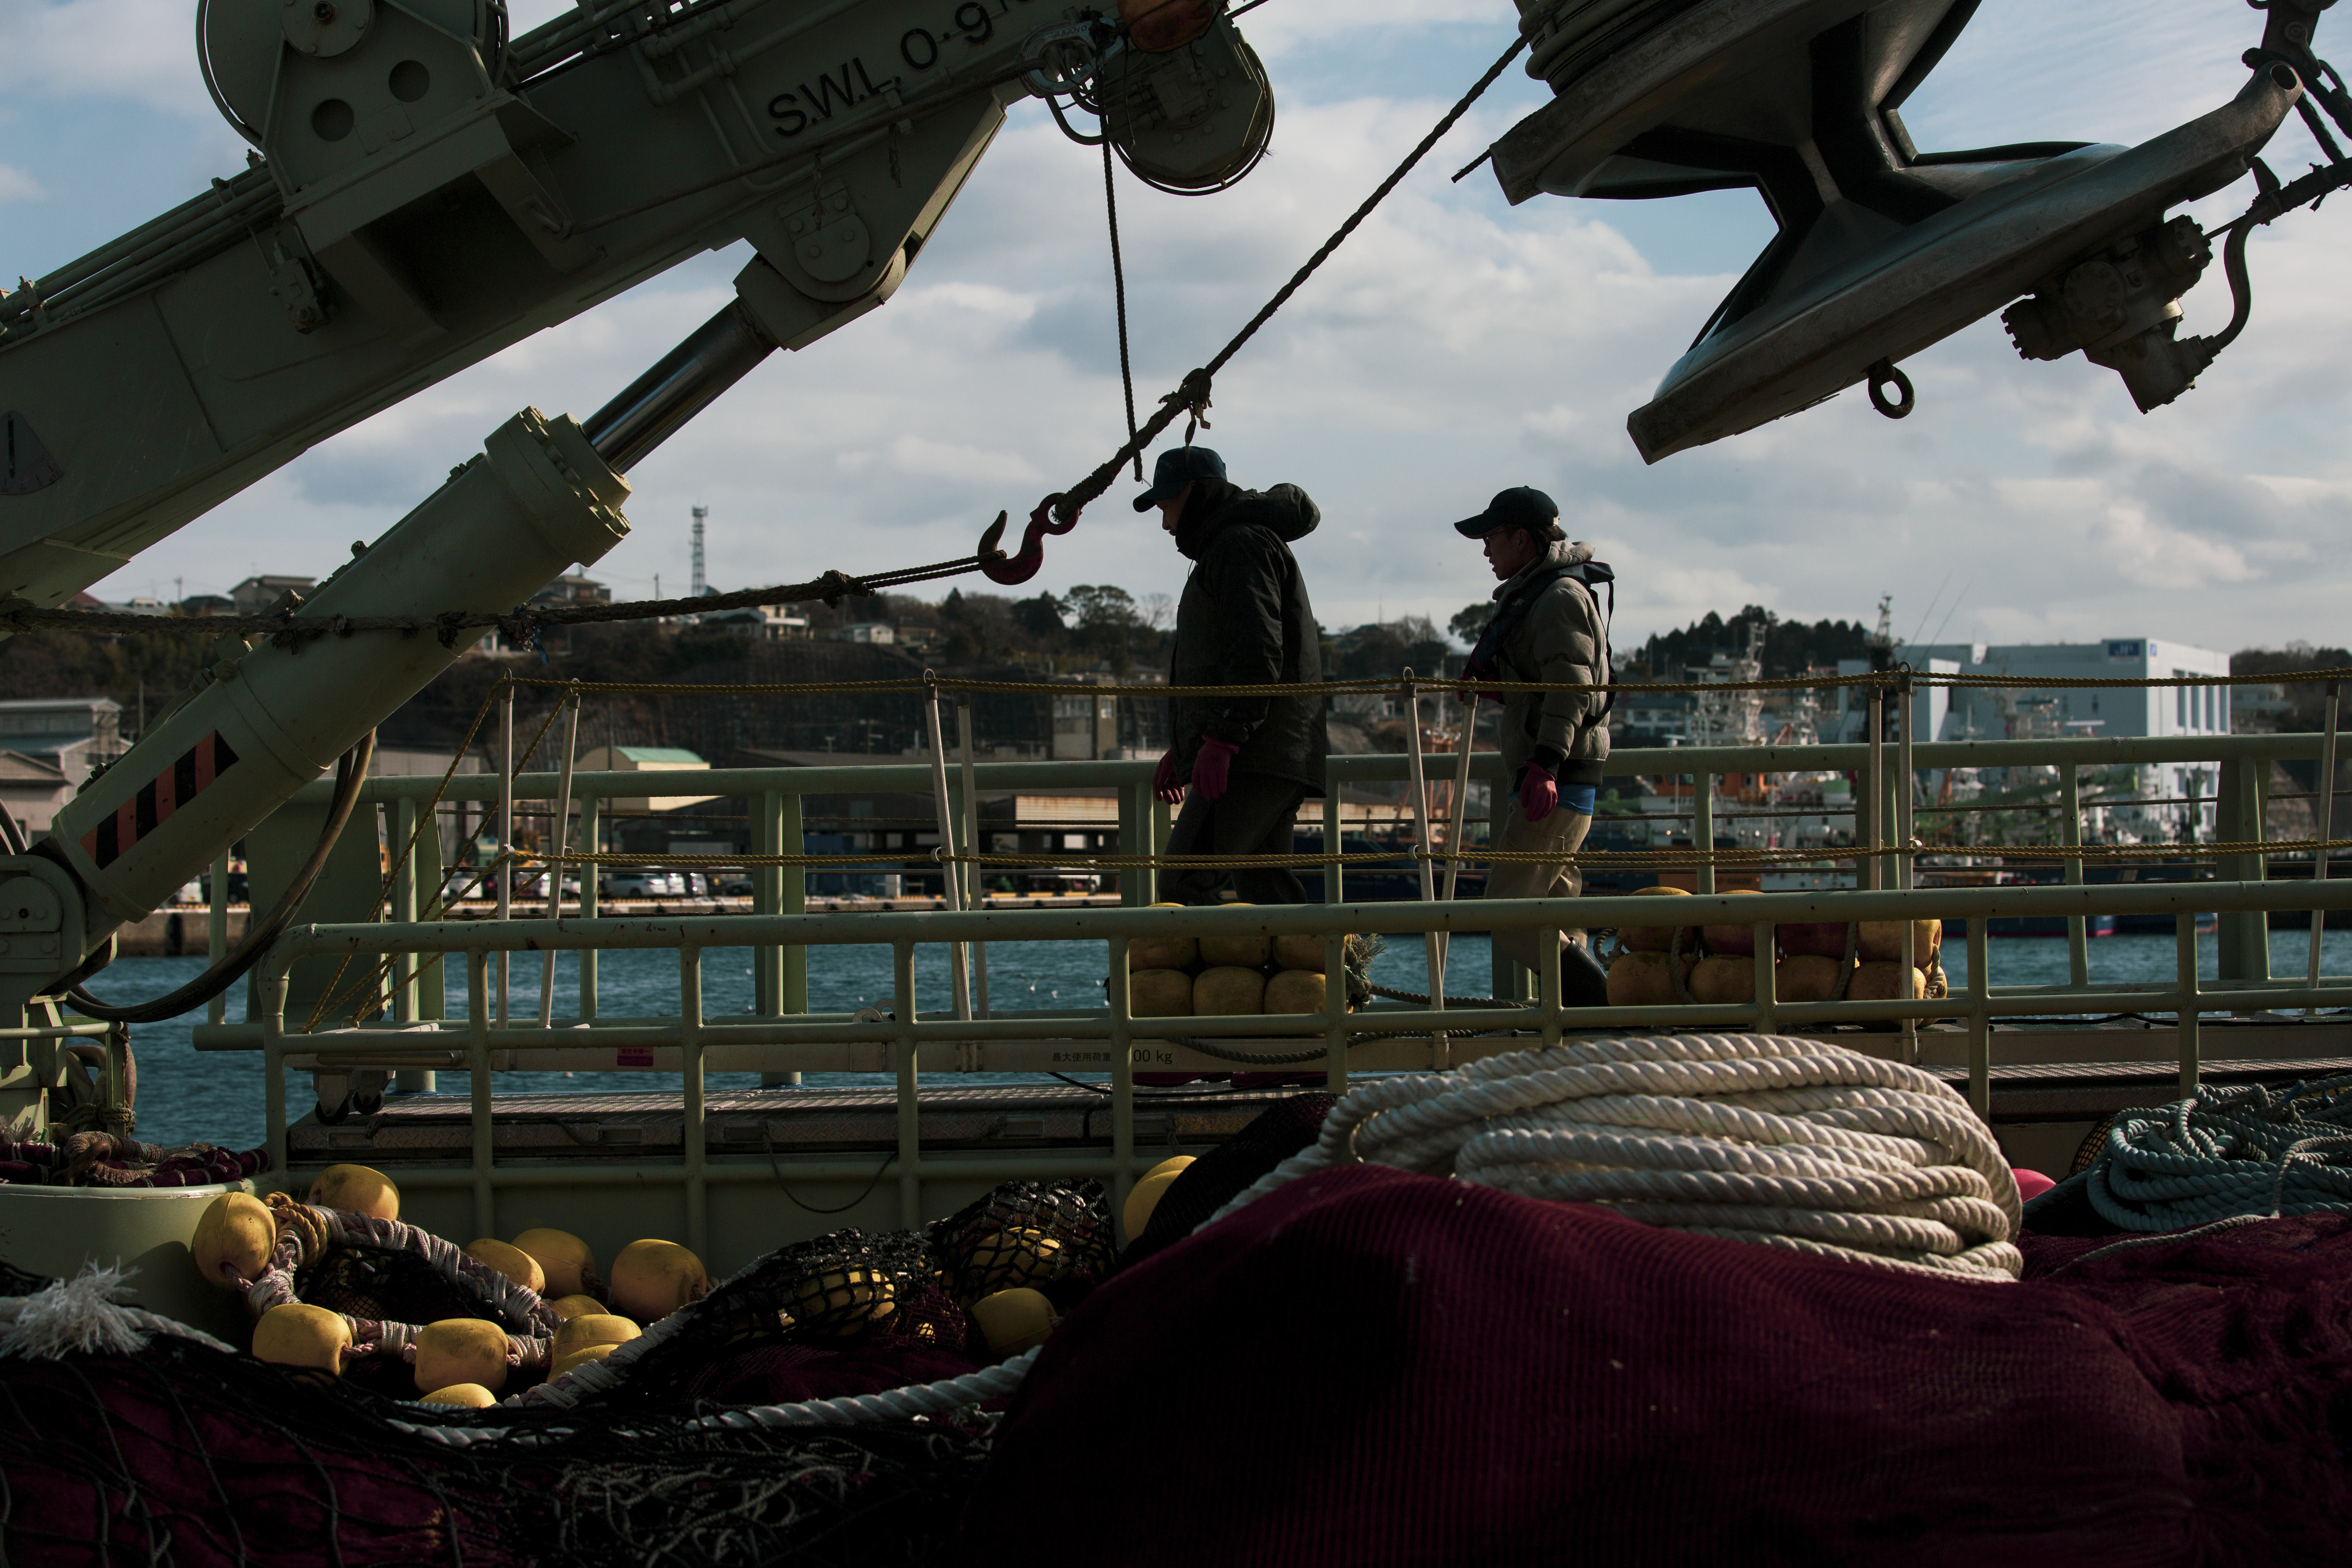 Fishermen leave a fishing boat at the port of Onahama in Iwaki, Japan. MUST CREDIT: photo for The Washington Post by Shiho Fukada.